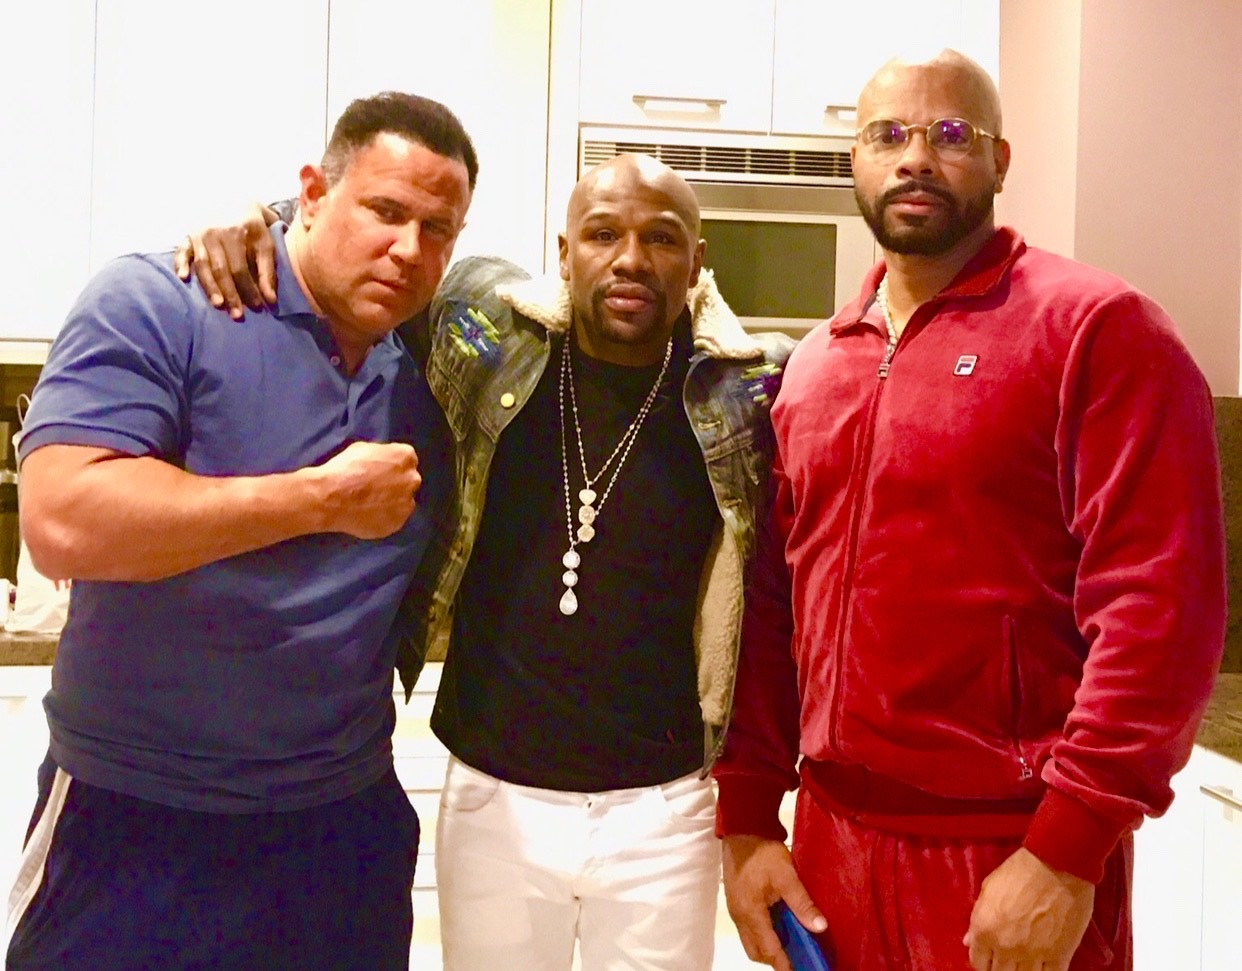 Floyd Mayweather Keith Middlebrook, Mayweather vs Pacqiuao, May Pac 2, Mayweather vs McGregor 2, Mayweather vs Khabib, Floyd Mayweather cars, Floyd Mayweather Fights, GUCCI, Louis Vuitton, Fendi, Bugatti Veyron, Las Vegas, Keith Middlebrook Las Vegas, Floyd Mayweather Las Vegas, Floyd Mayweather Keith Middlebrook, Keith Middlebrook Floyd Mayweather, Keith Middlebrook Brand, Keith Middlebrook Success, Keith Middlebrook Winning, Keith Middlebrook Net Worth, Keith Middlebrook Net Worth 2020 $100 Million, YouTube.com Keith Middlebrook, IMDB.com Keith Middlebrook, Images Keith Middlebrook, Google Keith Middlebrook, Bing Keith Middlebrook, Yahoo Keith Middlebrook, Keith Middlebrook Xccelerated Success, Xccelerated Success, The Rock vs The Real Iron Man, God, Goals, Gym, Gratitude, Giving, Success Wealth Prosperity, Winning, Mayweather vs McGregor 2, Mayweather vs Khabib, Mayweather vs Pacquiao 2.